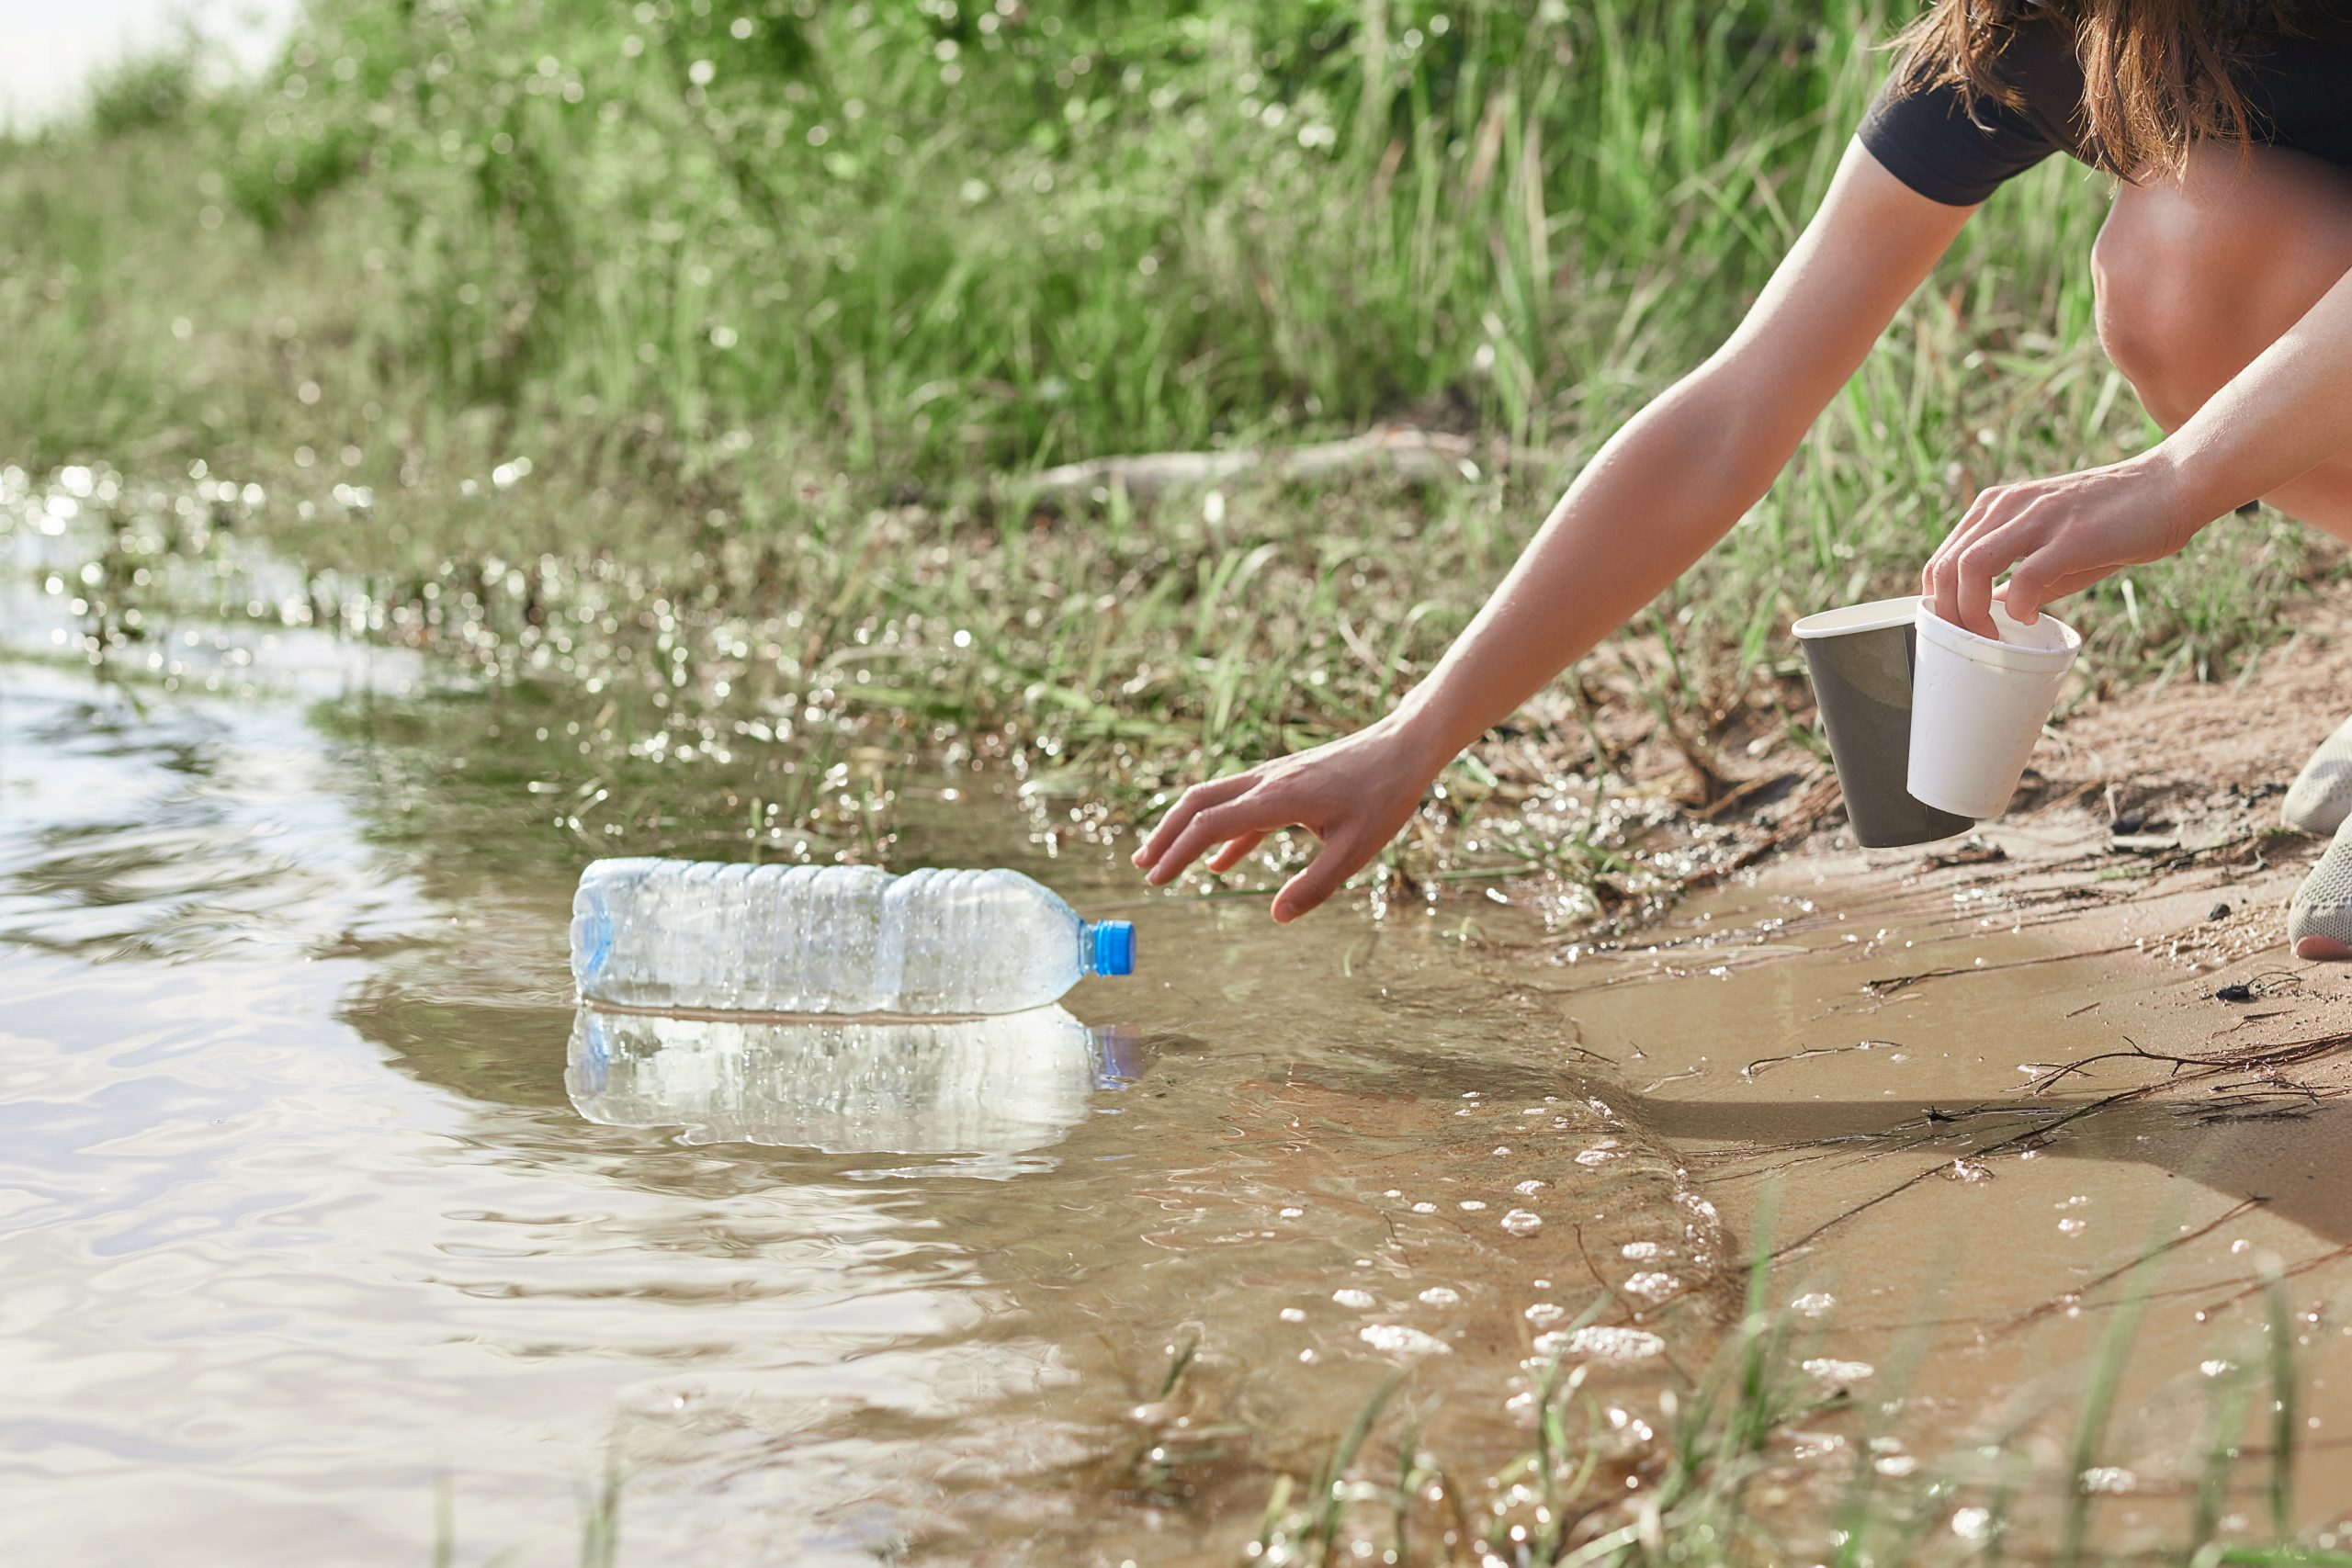 How to Filter Dirty Water in the Wild